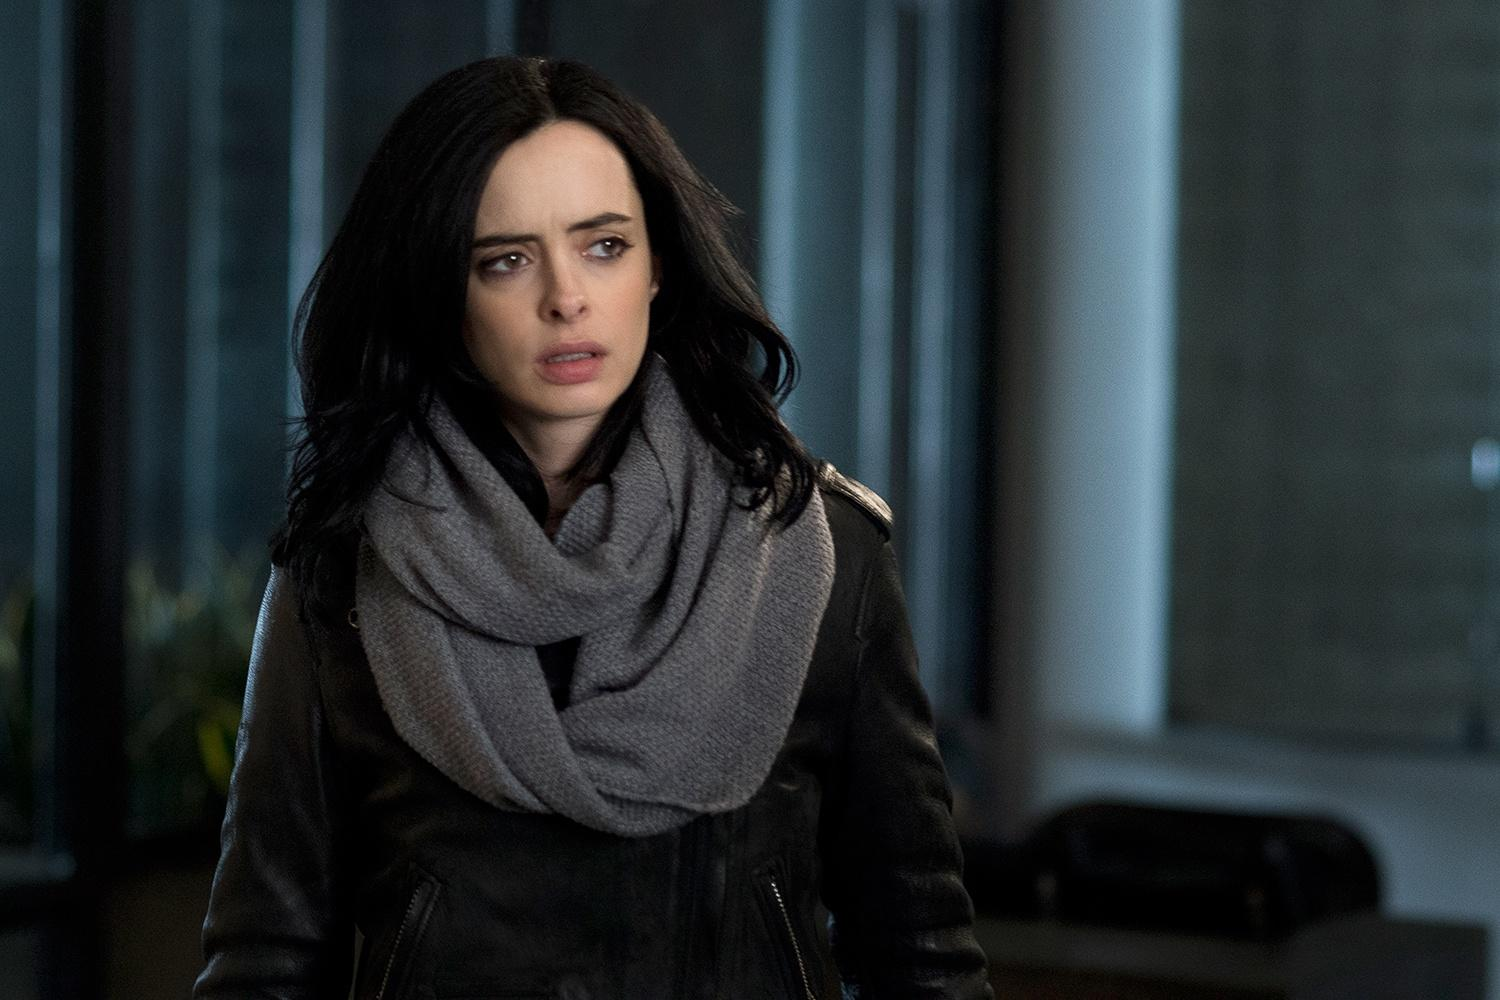 Netflix and Marvel's Jessica Jones is the feminist superhero we all need